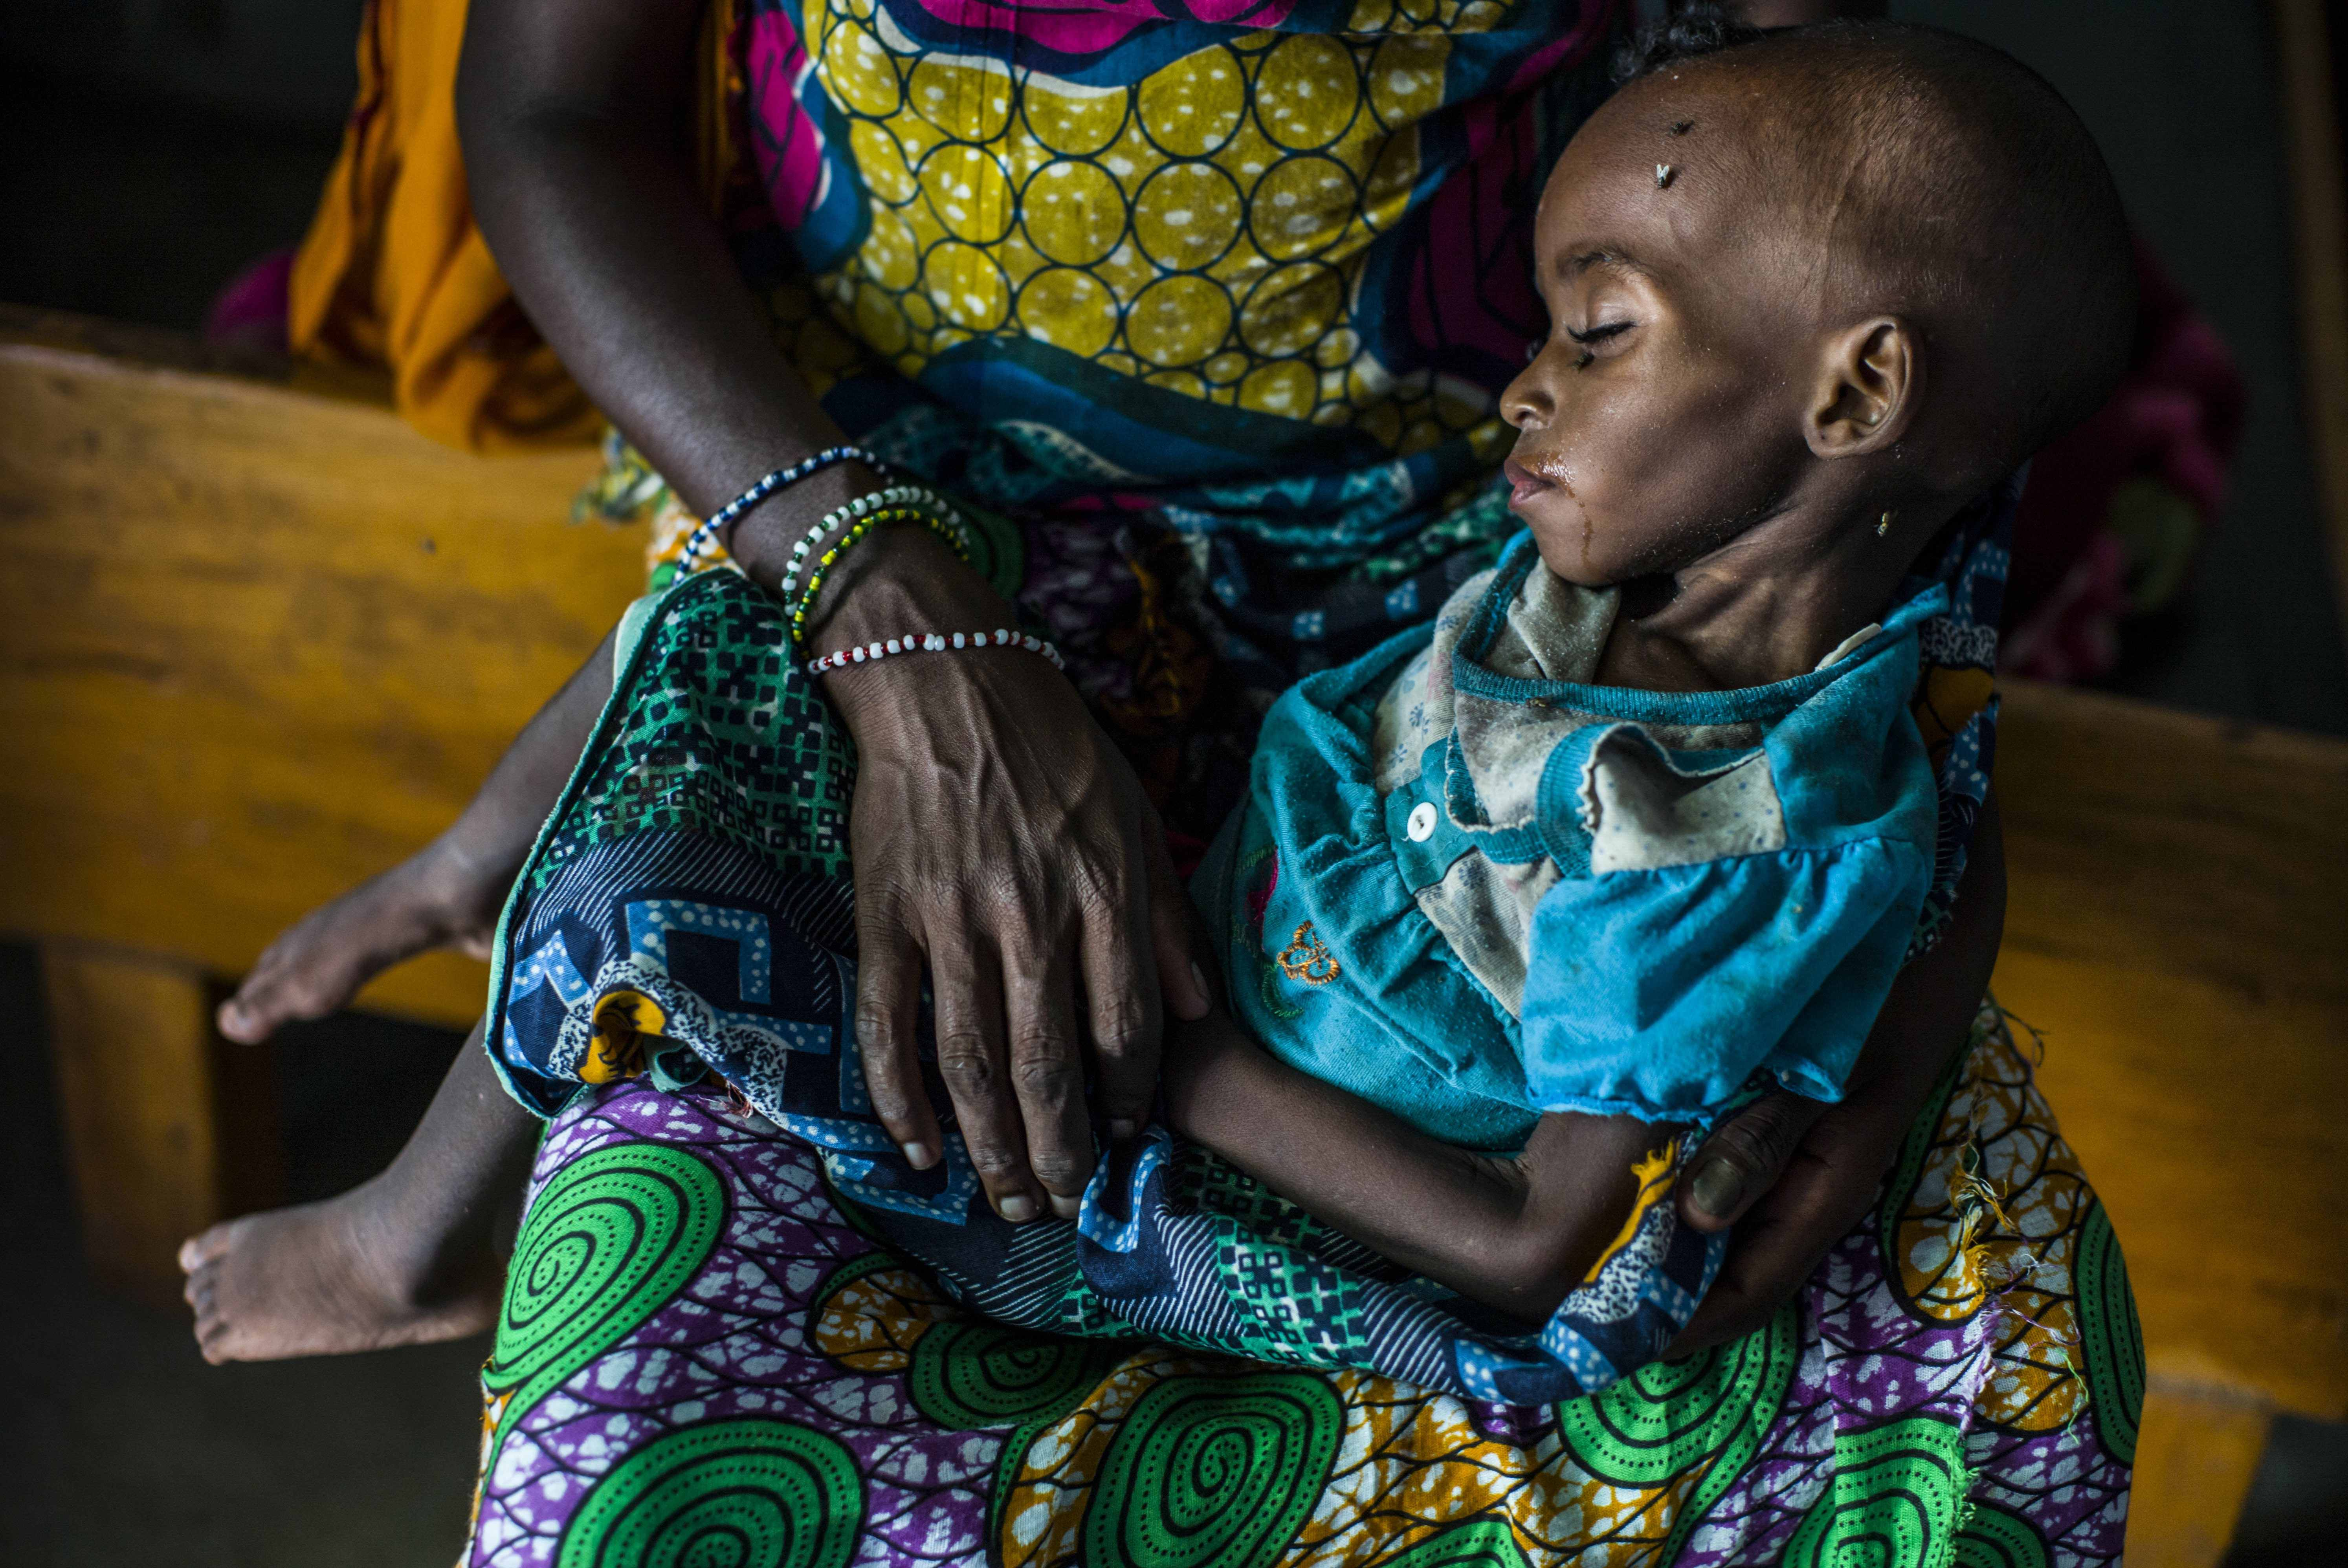 Eighteen-month-old Aishatou is treated for acute malnutrition at Gore hospital in Chad. Her mother, Fatouma, arrived with her at Dosseye refugee camp two weeks earlier, after walking for a month in the bush to escape violence in the Central African Republ